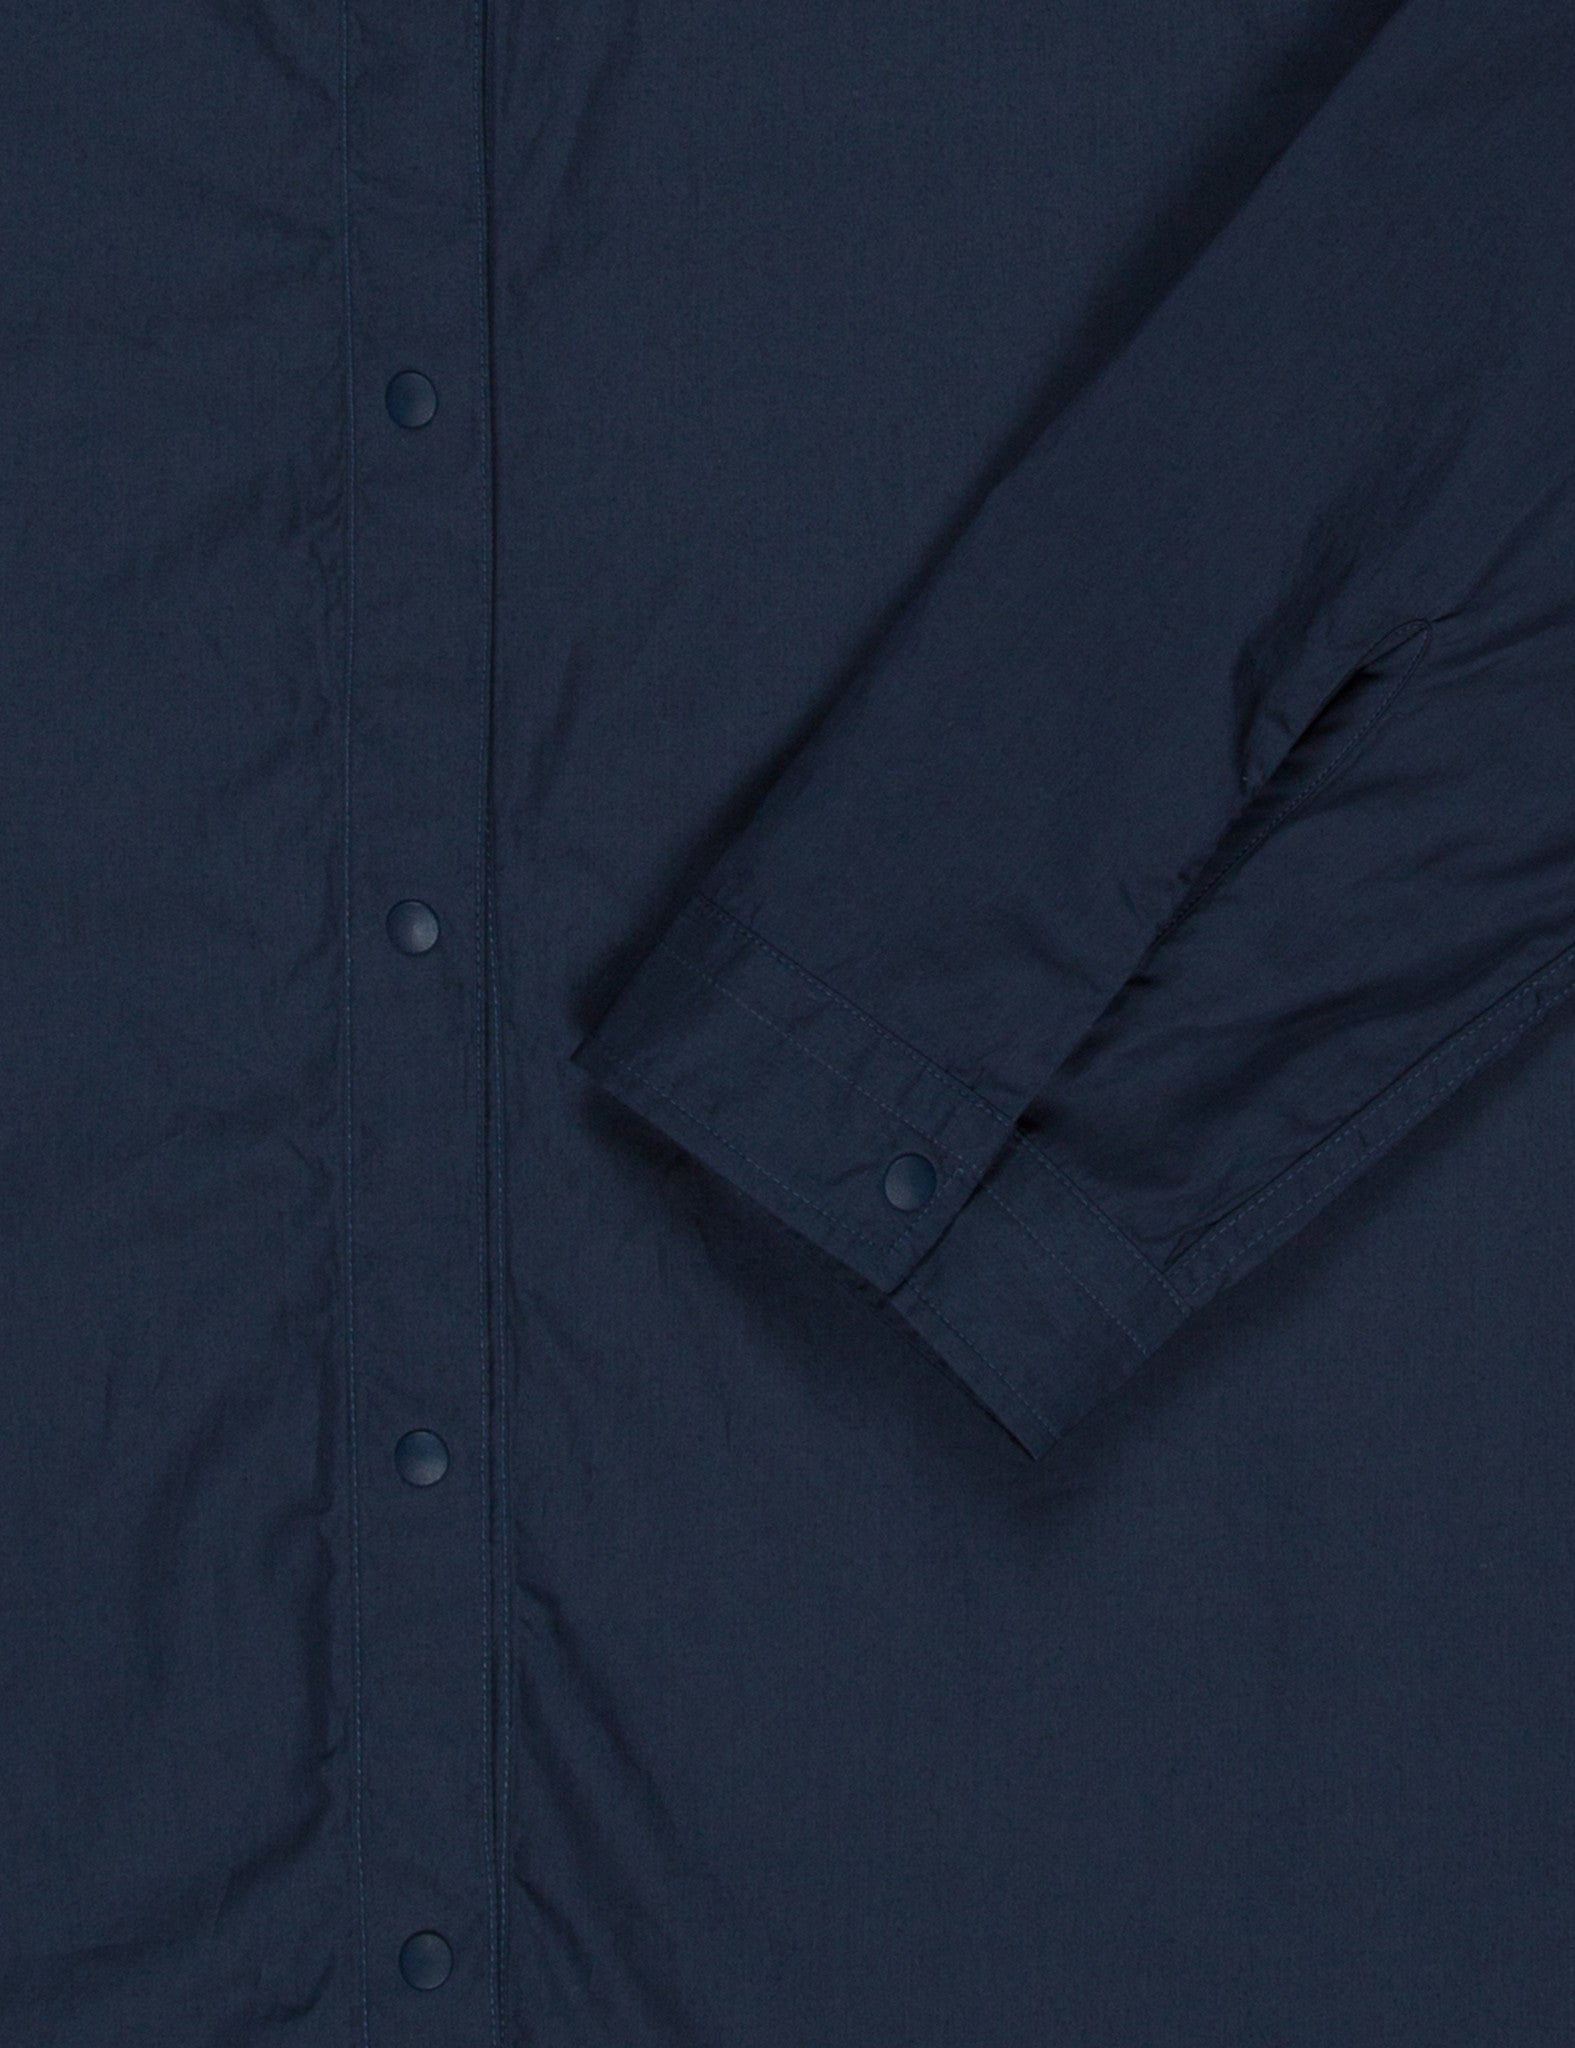 Norse Projects Bertil Baseball Shirt (Poplin)  - Navy Blue